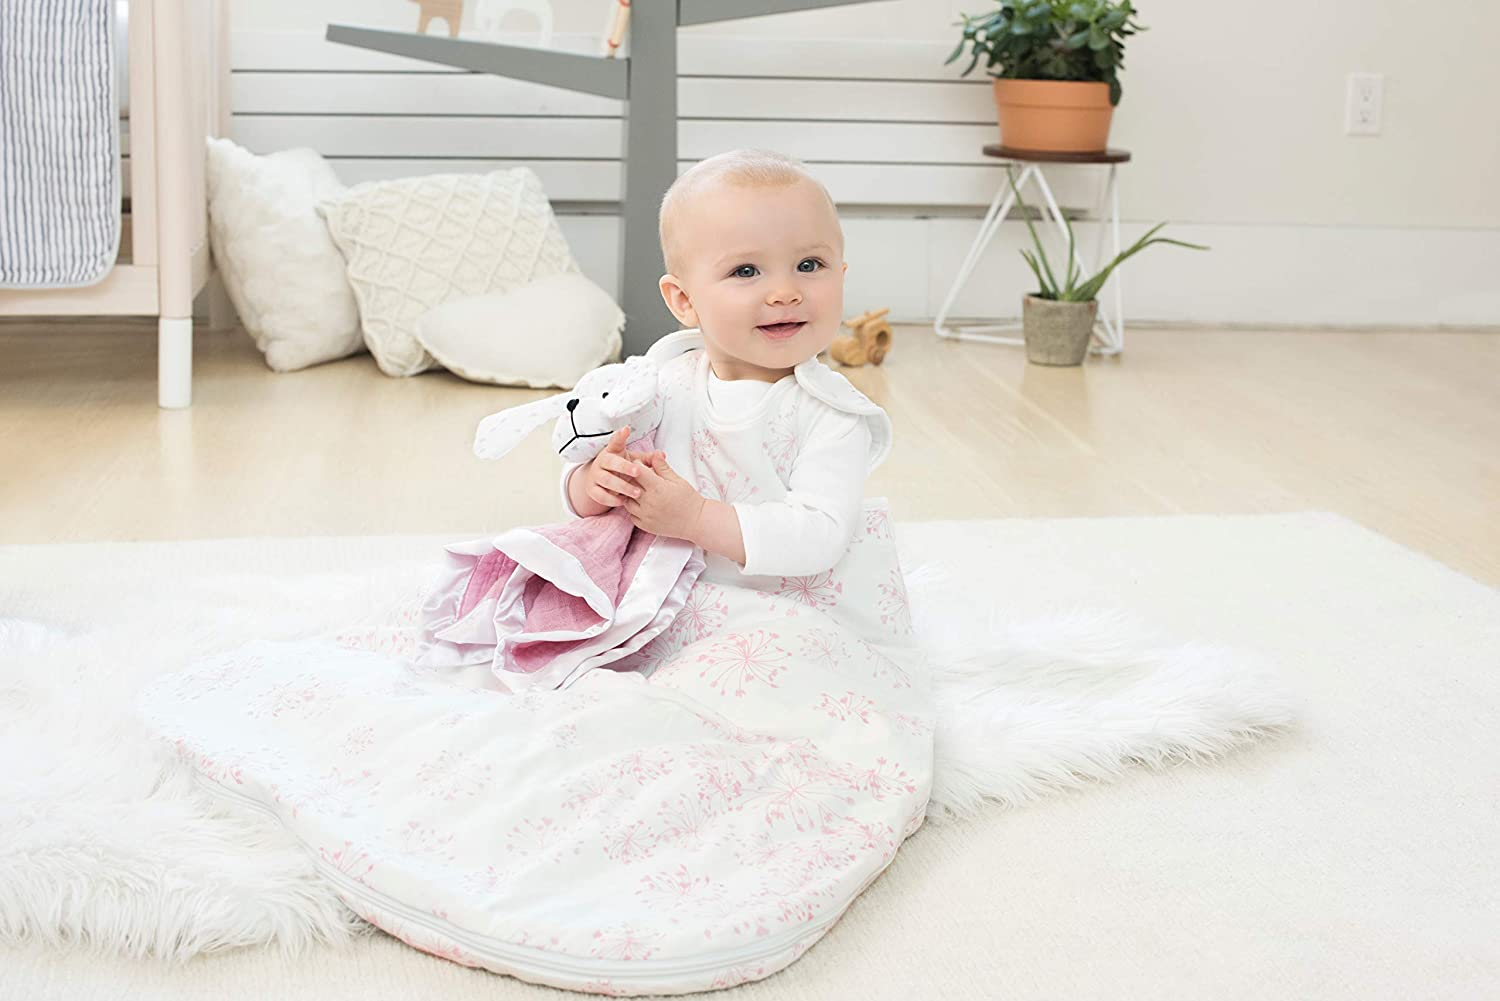 Amazon.com: aden + anais Winter Sleeping Bag - Lovely Reverie Dandelion - 0-6m: Baby